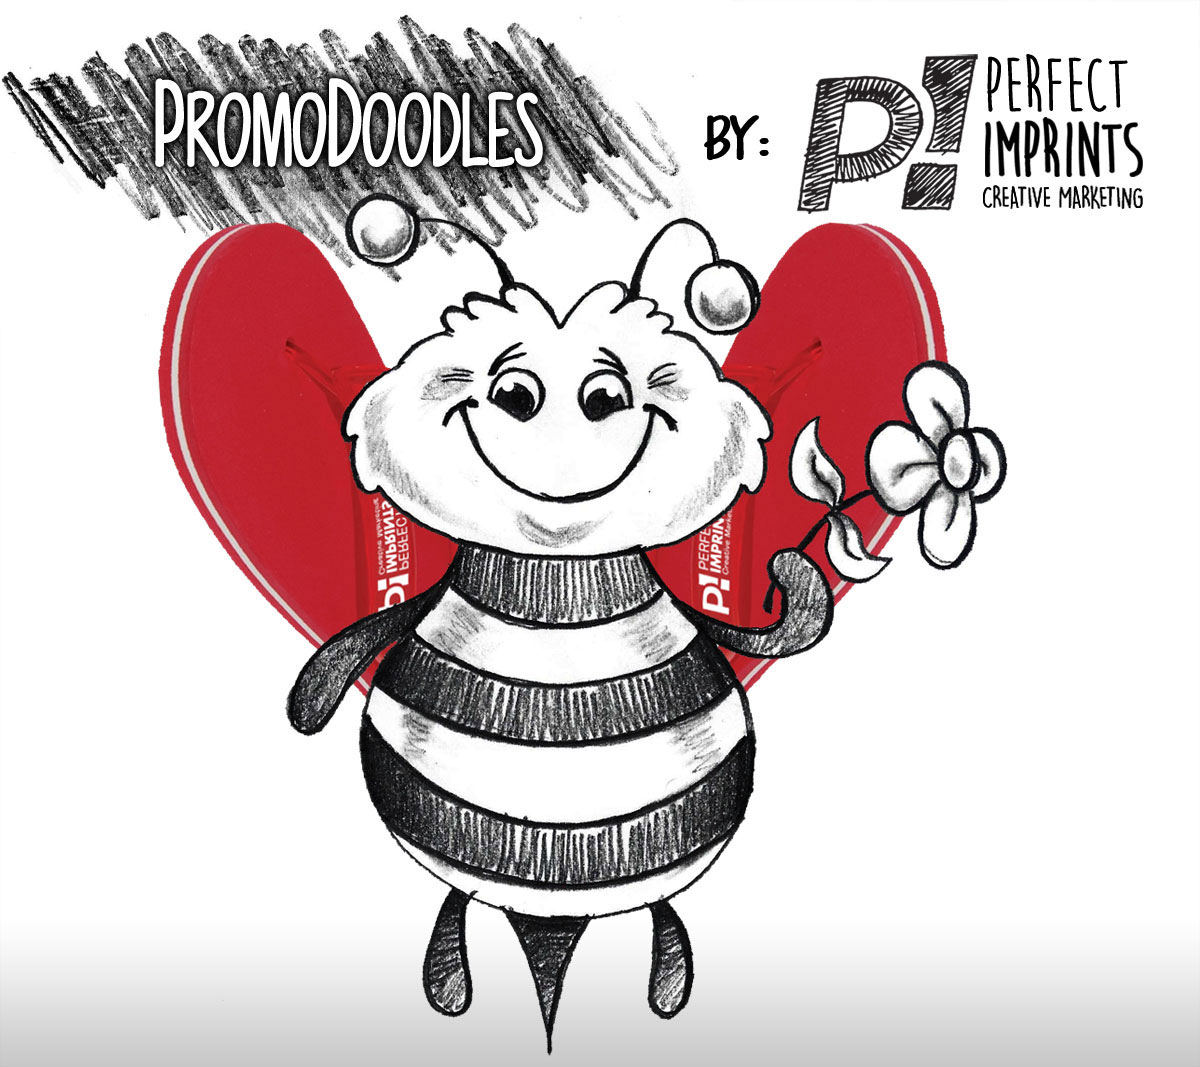 Flip Flop Bee - PromoDoodles by Perfect Imprints